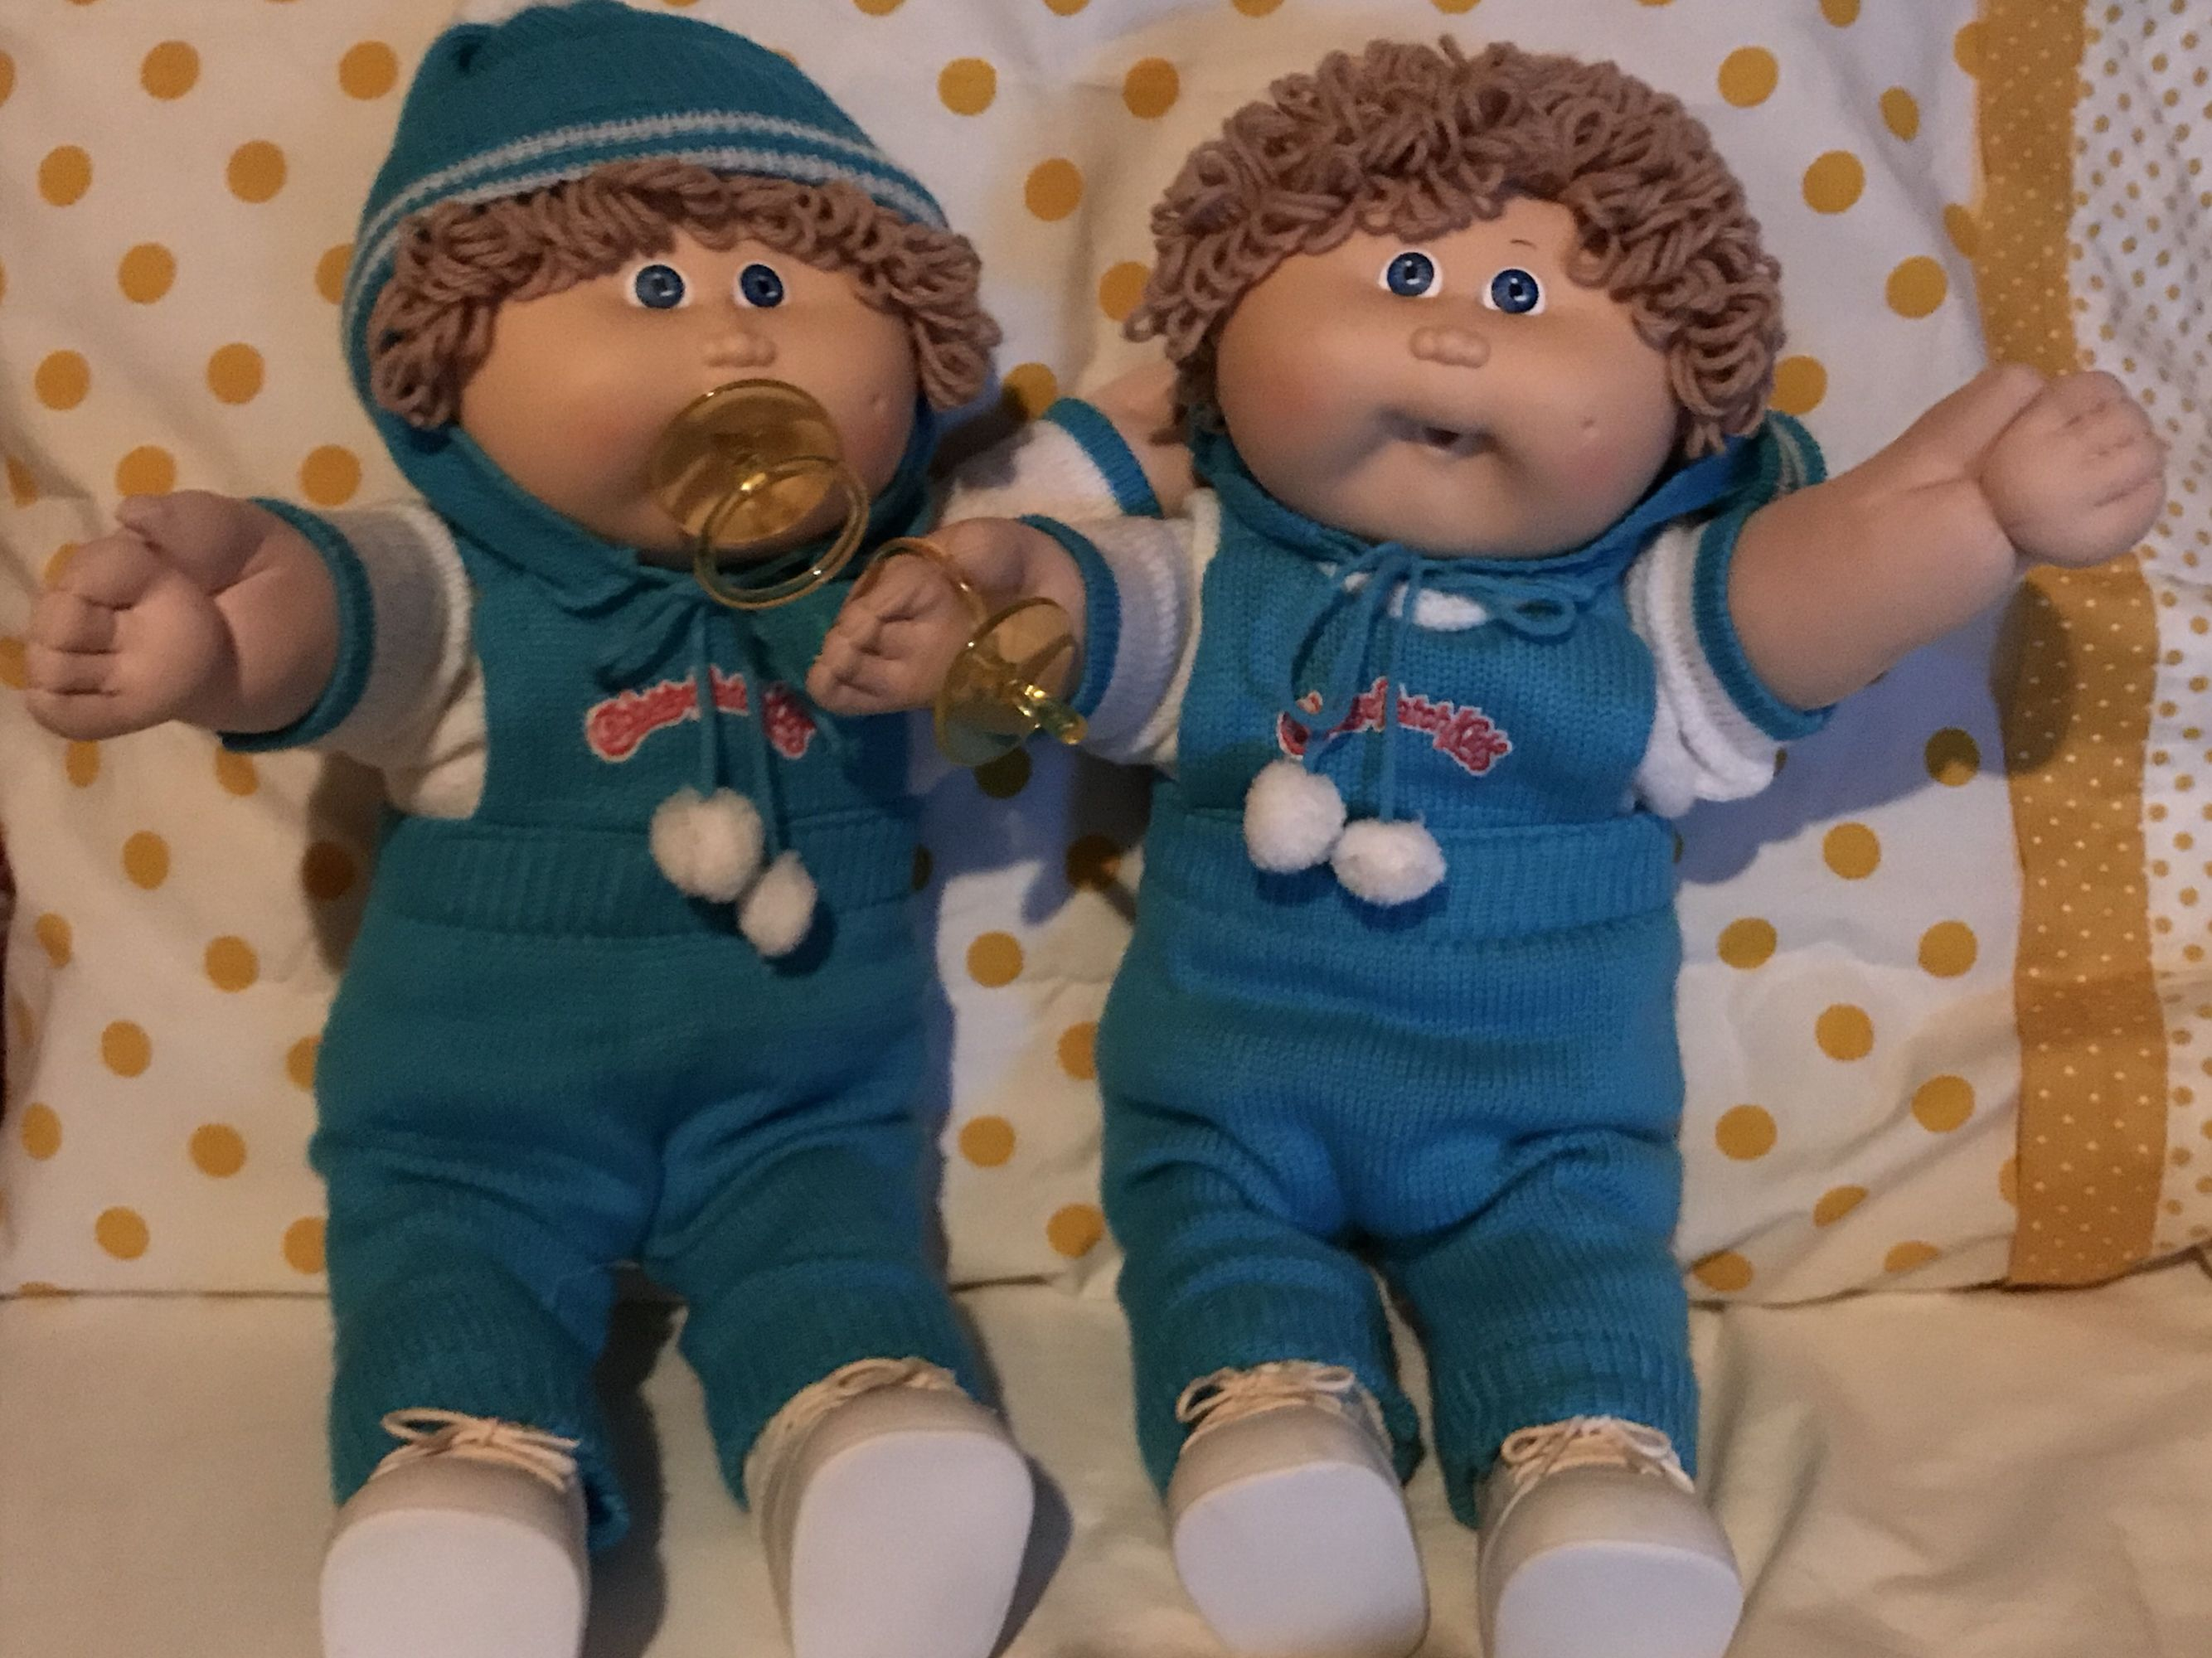 Vintage Cabbage Patch Kids Twin Dolls 1986 Hm 6 P Factory Wheat Hair Boys With Blue Eyes And Pacifiers Cabbage Patch Kids Twin Dolls Kids